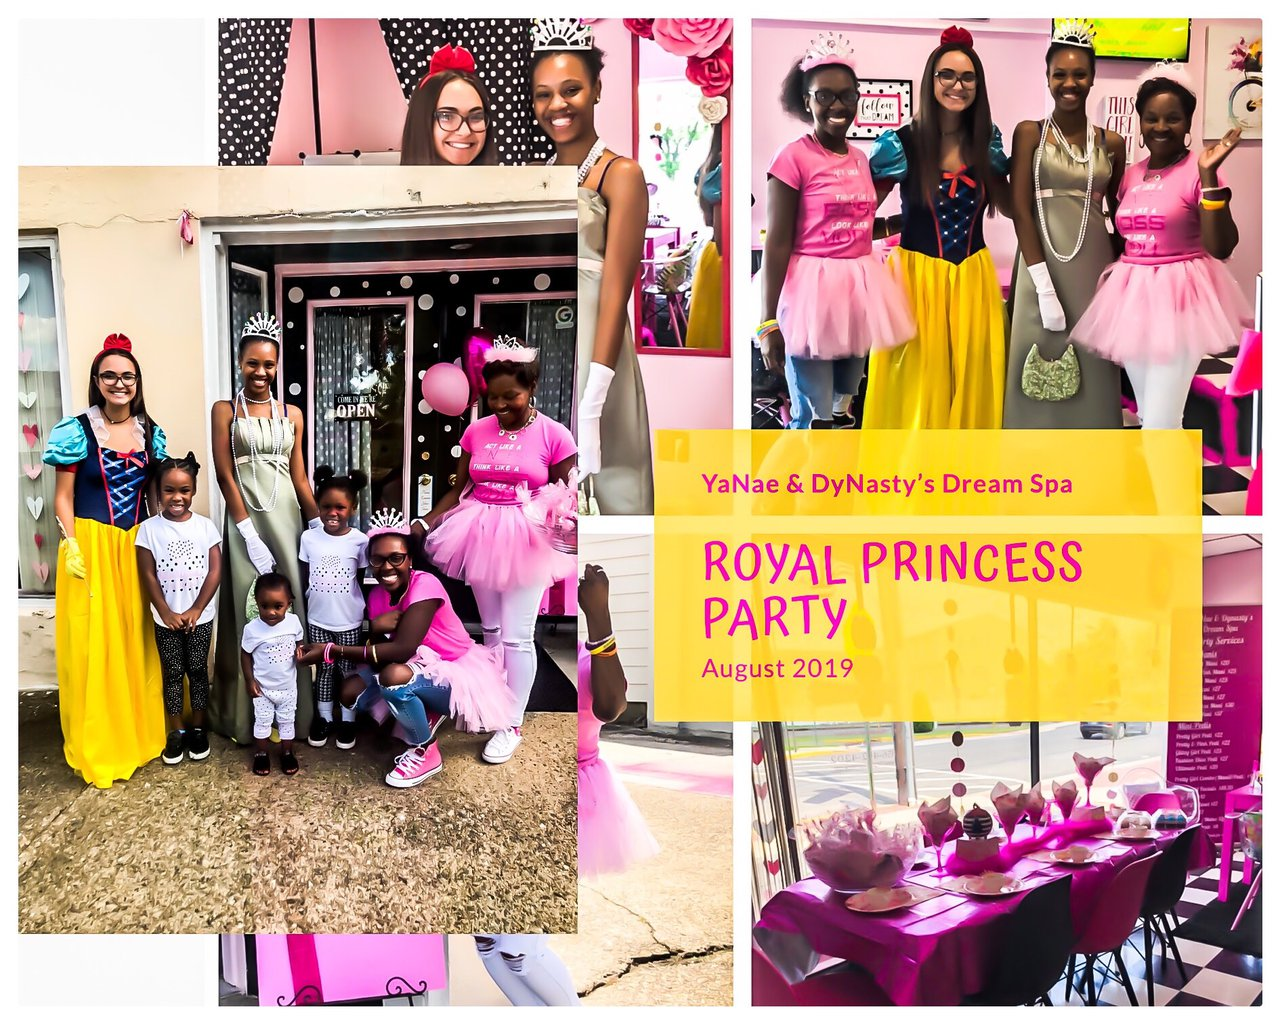 Princess Party photo 4FE0444D-9AE6-46F4-AFAE-531EE40B9A19.jpg